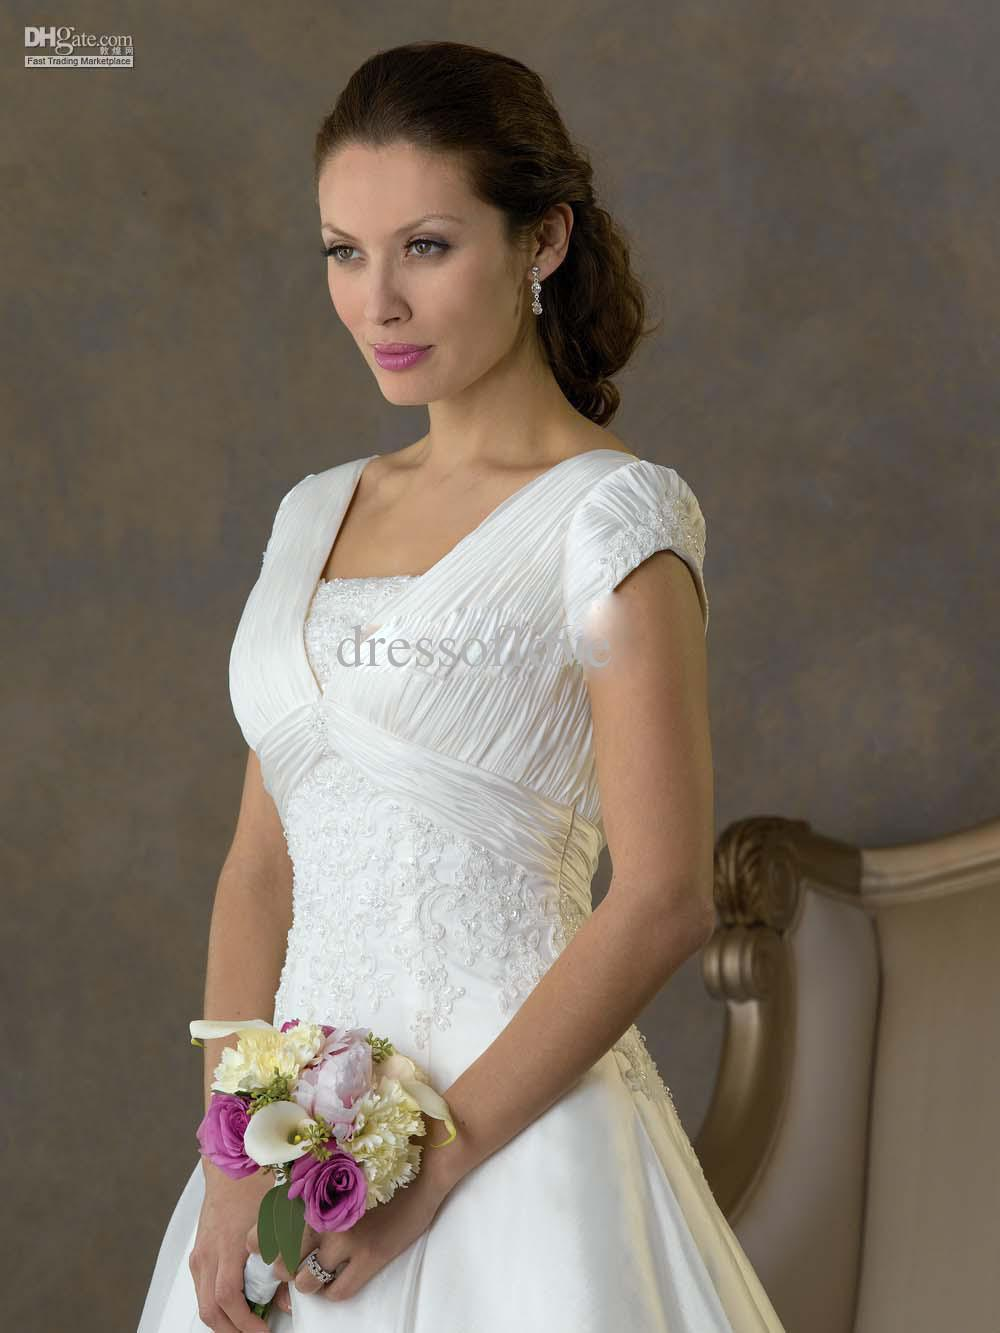 Discount 2011 new modest gown short sleeve wedding dresses see larger image ombrellifo Gallery